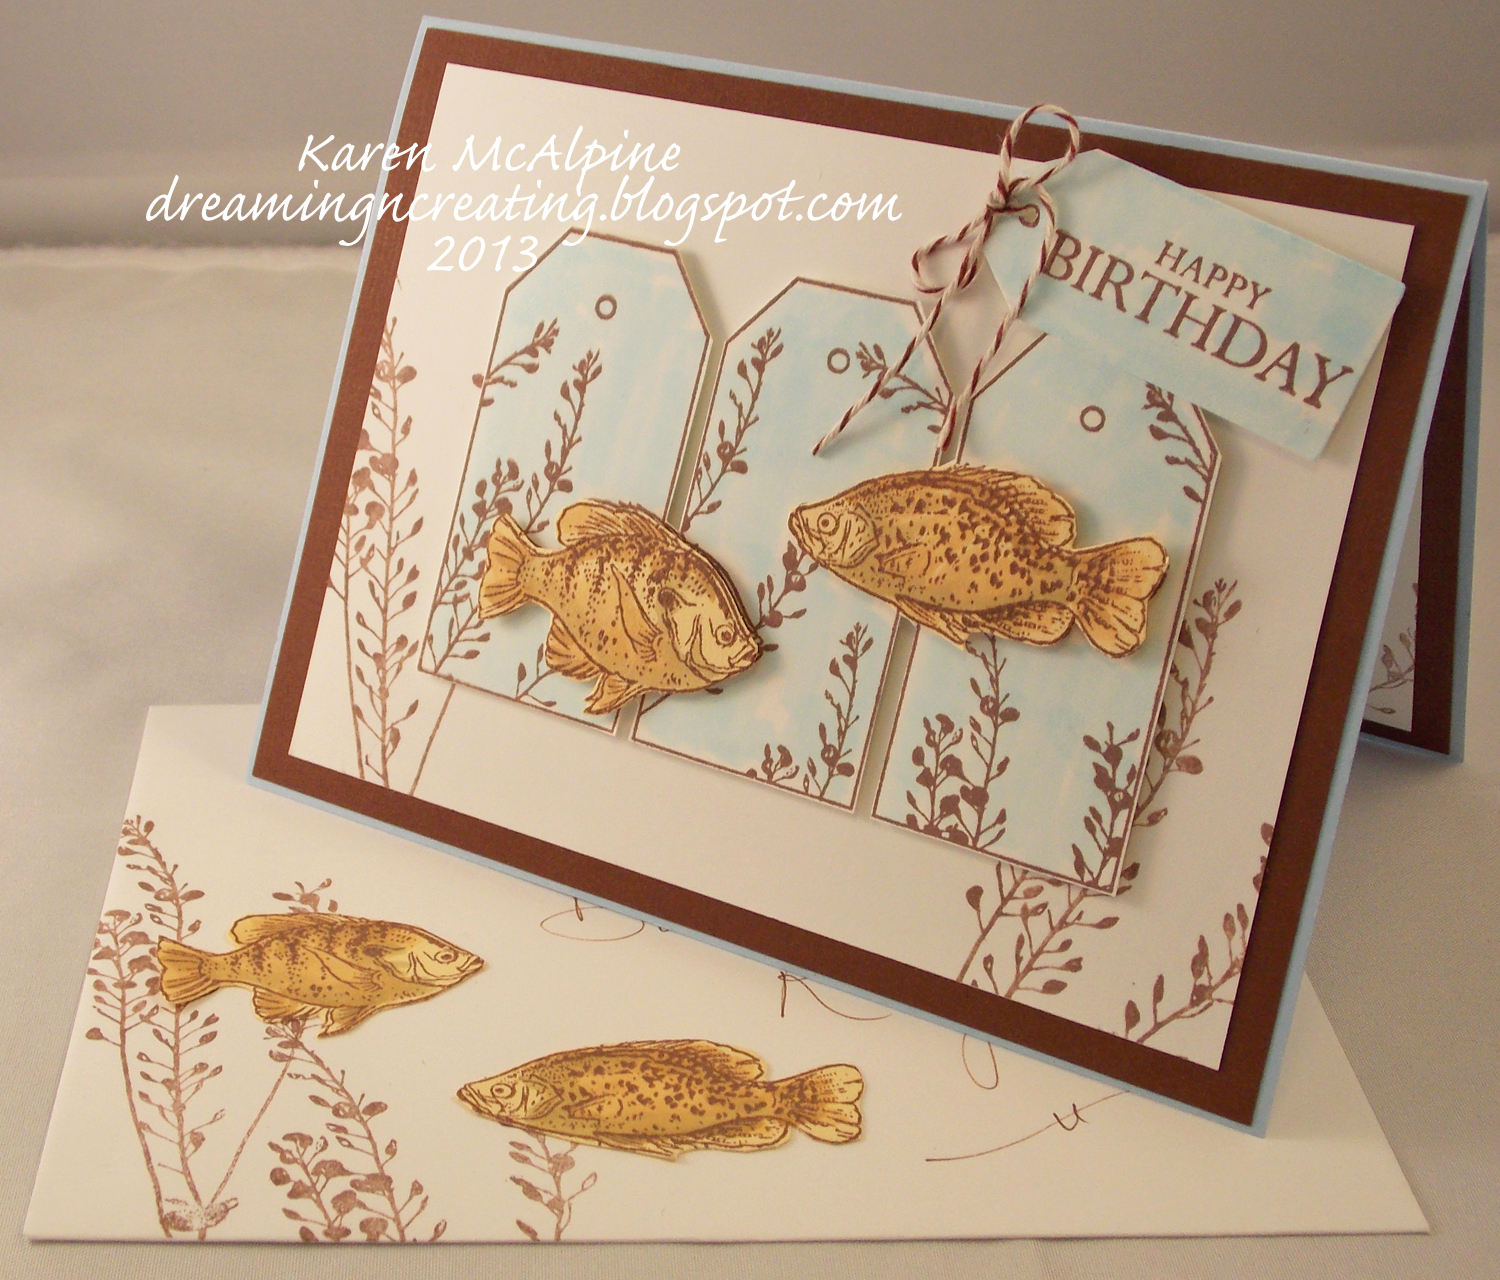 Dreaming and Creating Masculine Birthday Card with Fish – Fish Birthday Card